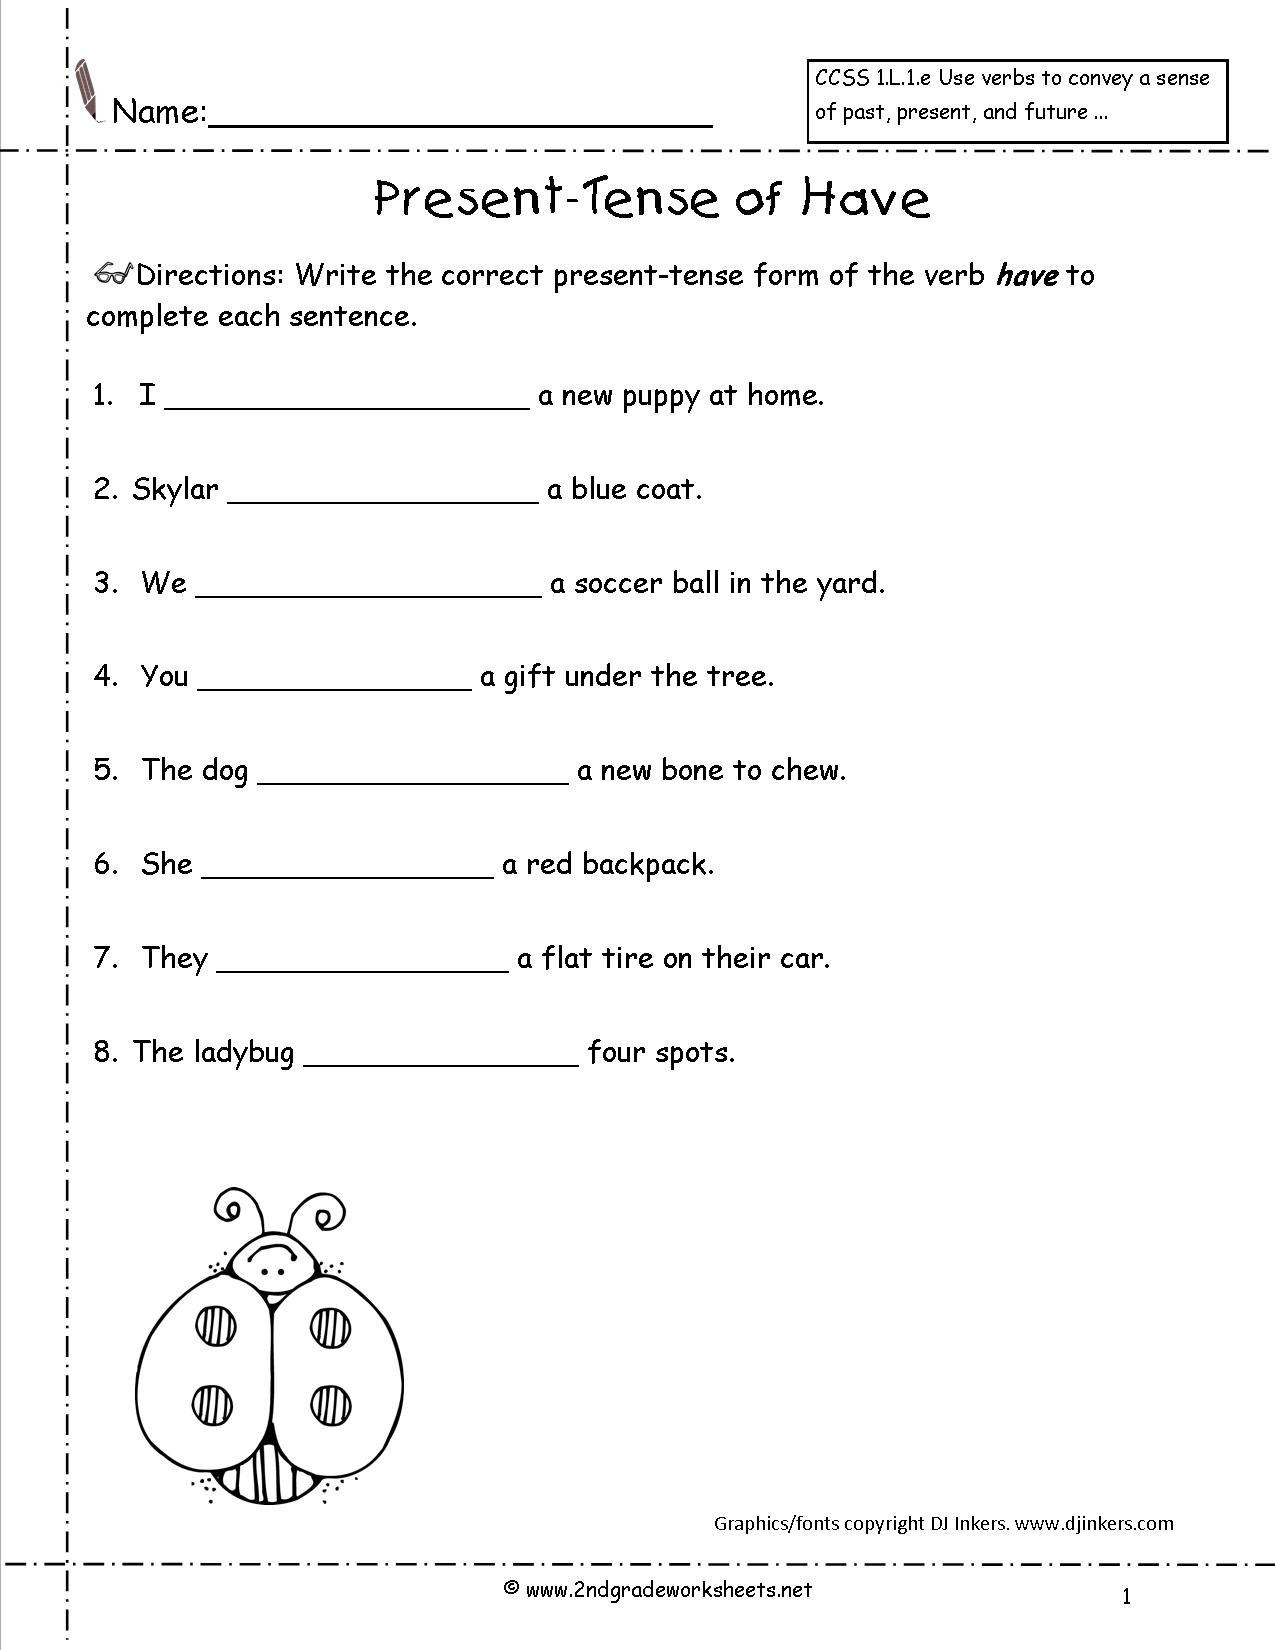 Tenses Worksheets for Grade 6 Present Progressive Tense Worksheet Grade 4